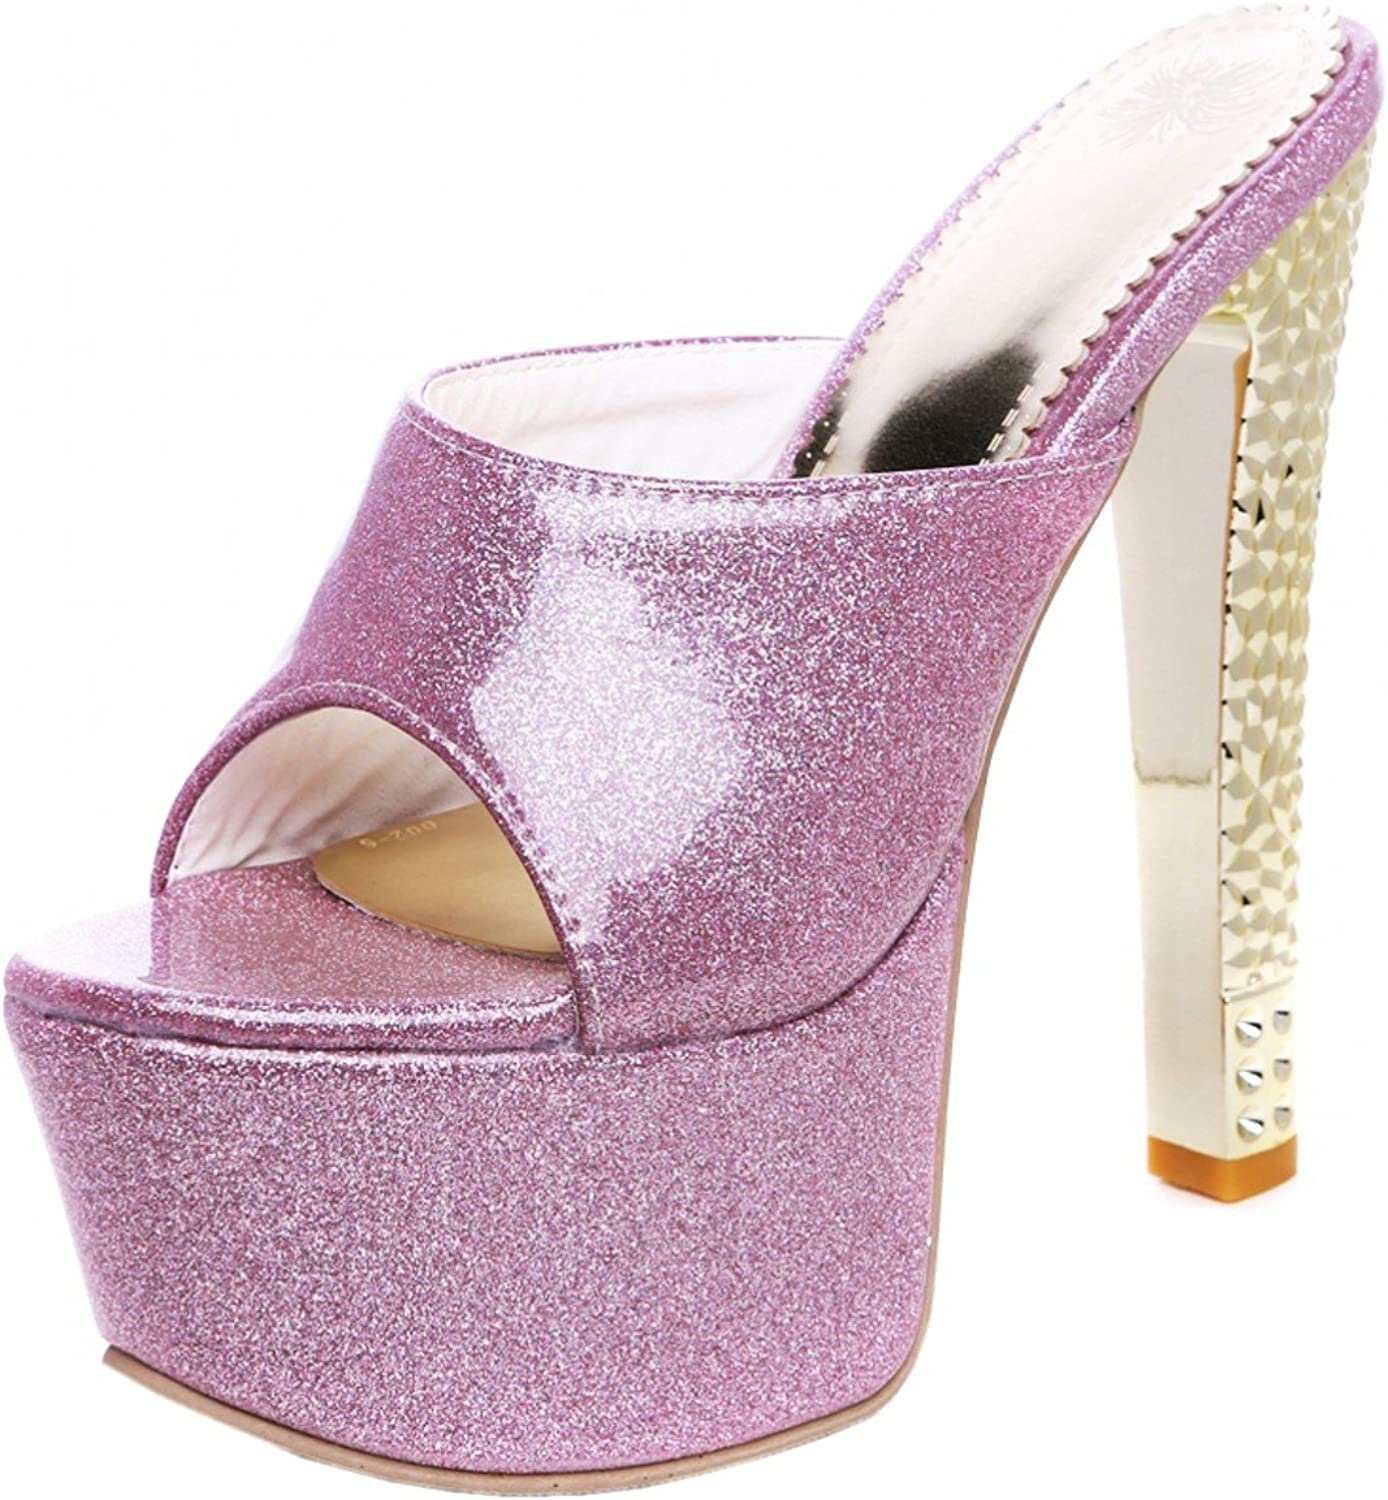 Rongzhi Womens High Heels Mules Pumps Heeled Sandals Glisten Platform Slip On Party Prom shoes Open Toe